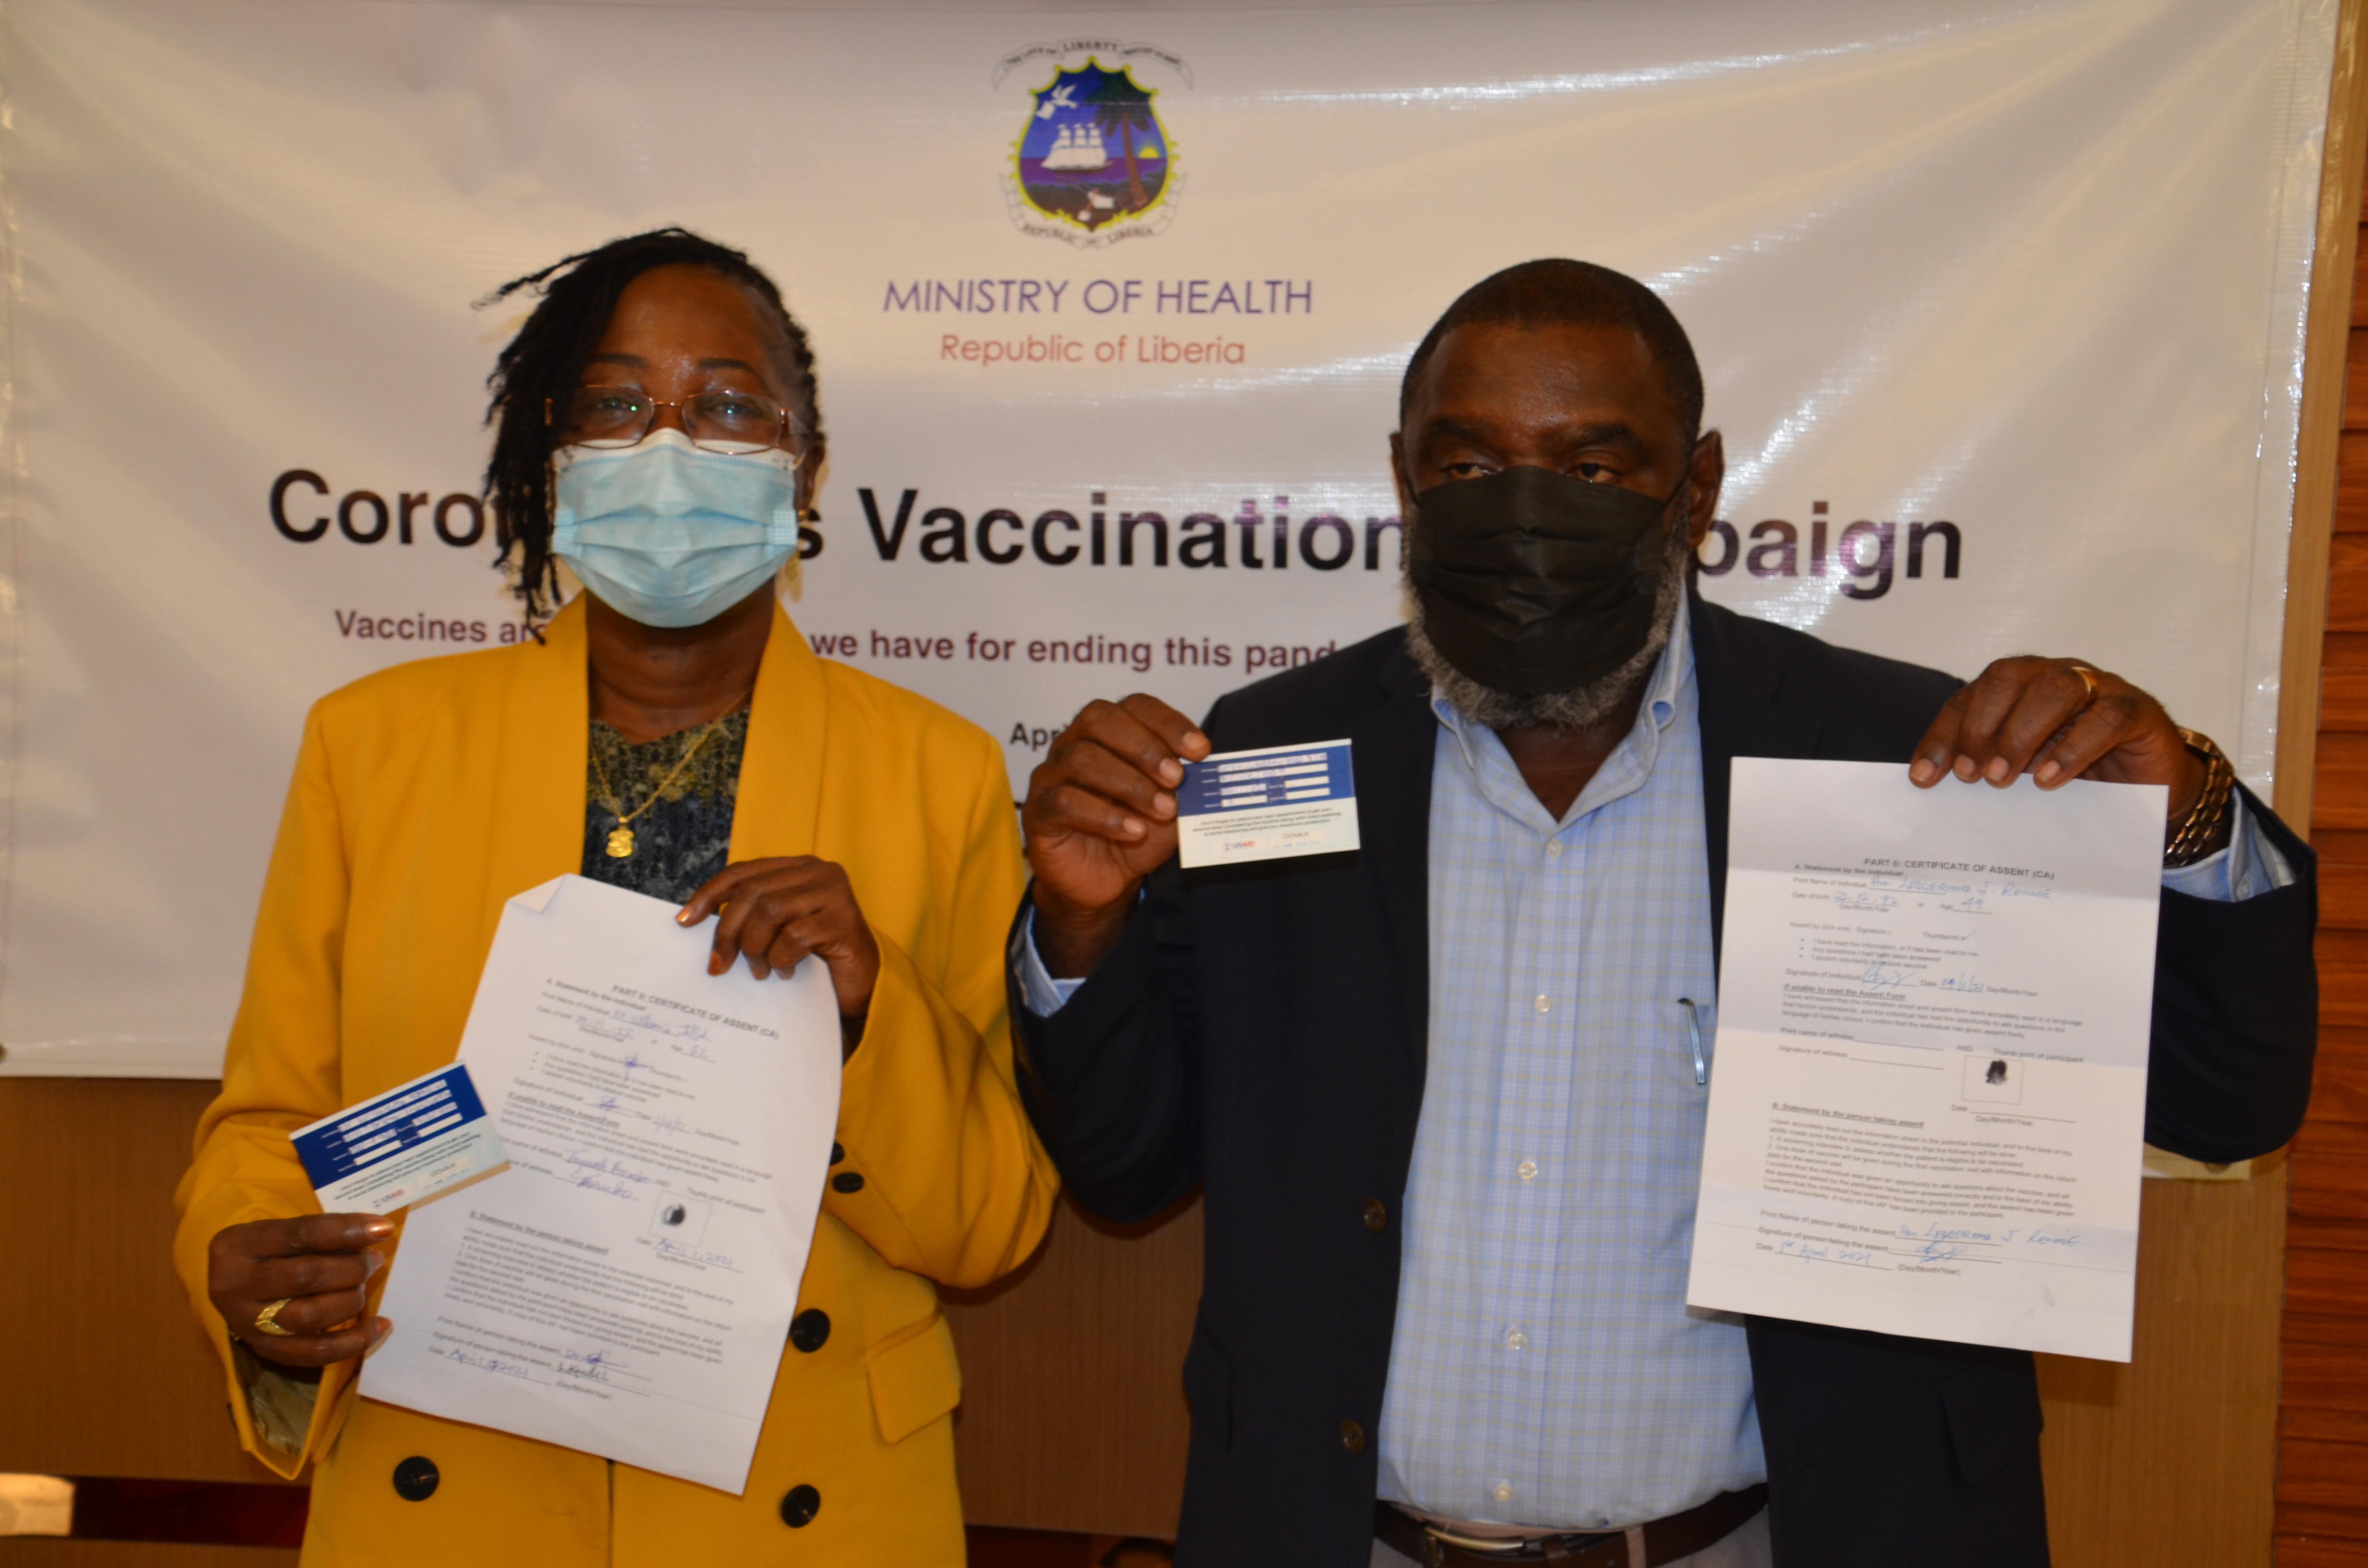 Health Minister Dr. W.Jallah and Information Minister after receiving COVID-19 Vaccine